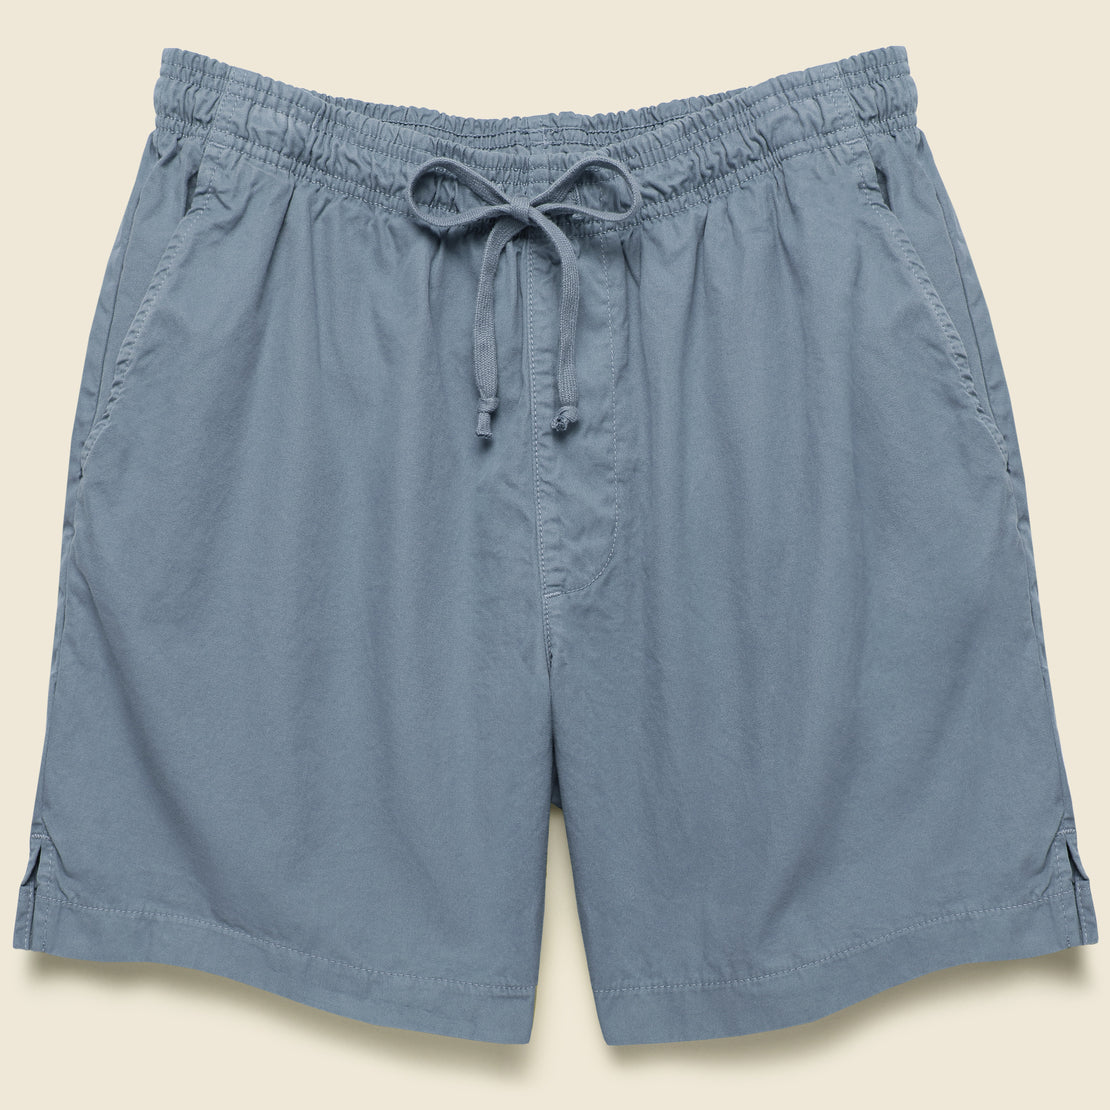 Save Khaki Twill Easy Short - Wave